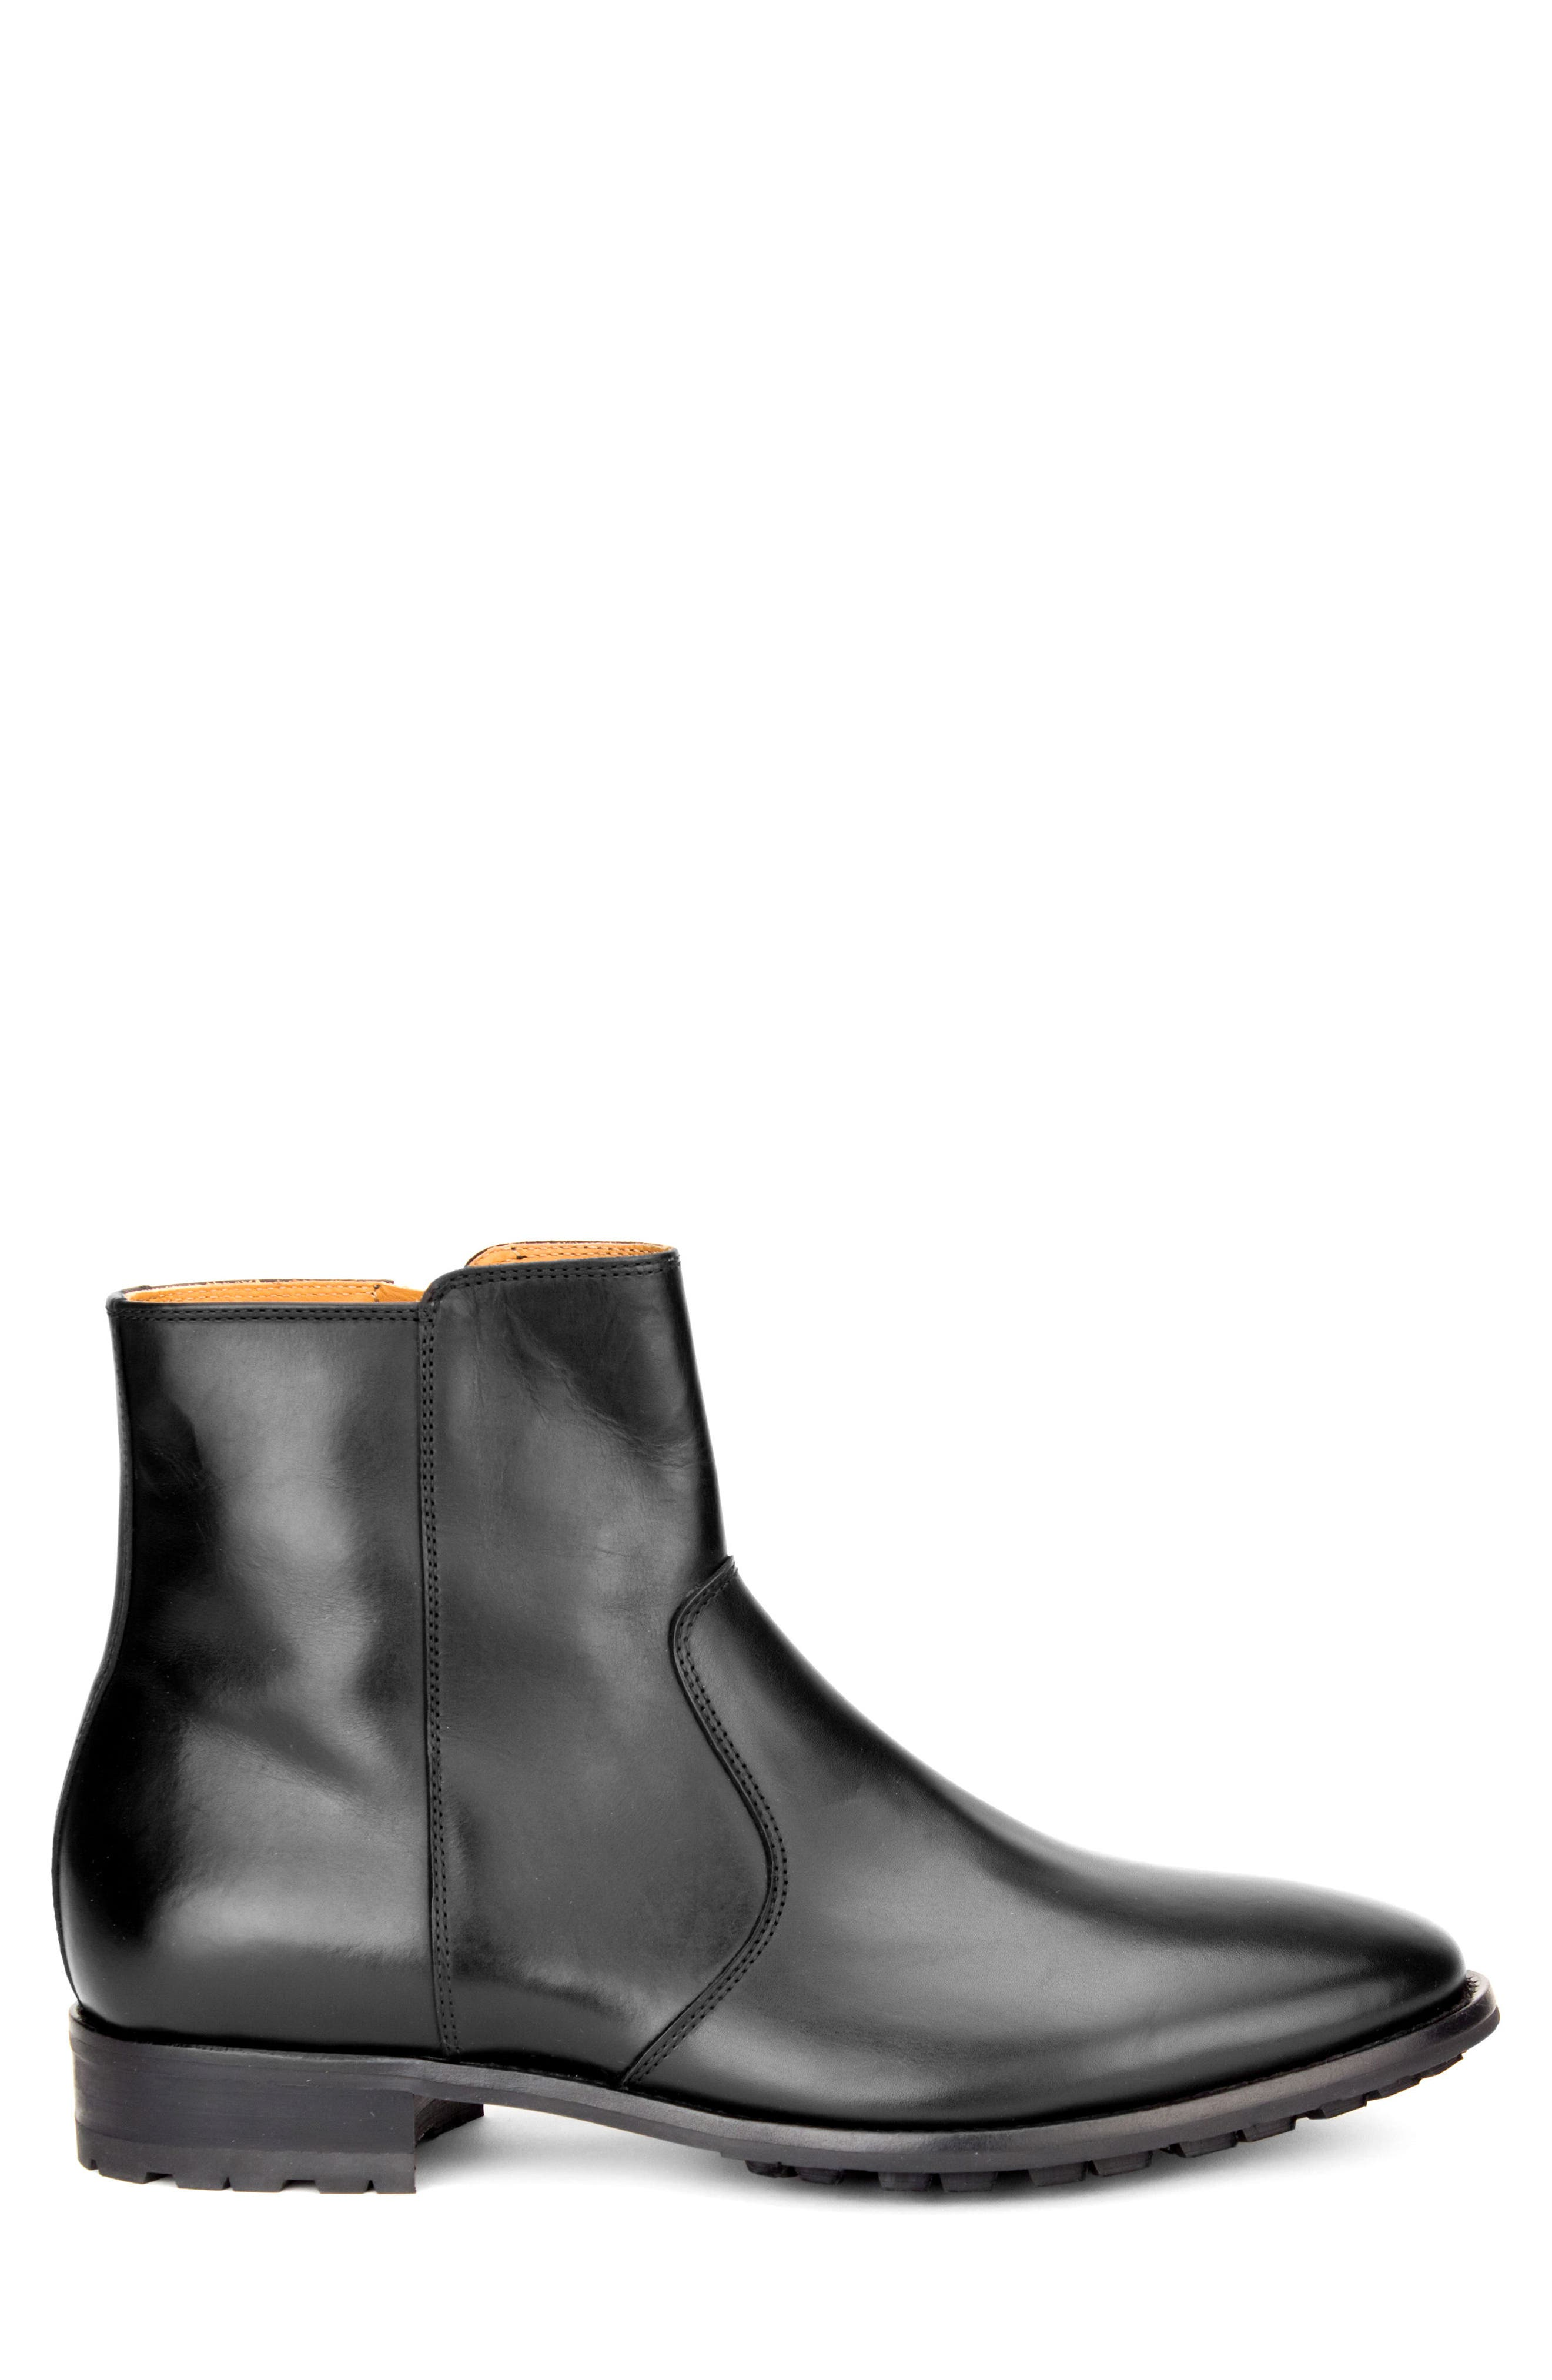 Roberts Zip Boot,                             Alternate thumbnail 3, color,                             BLACK LEATHER